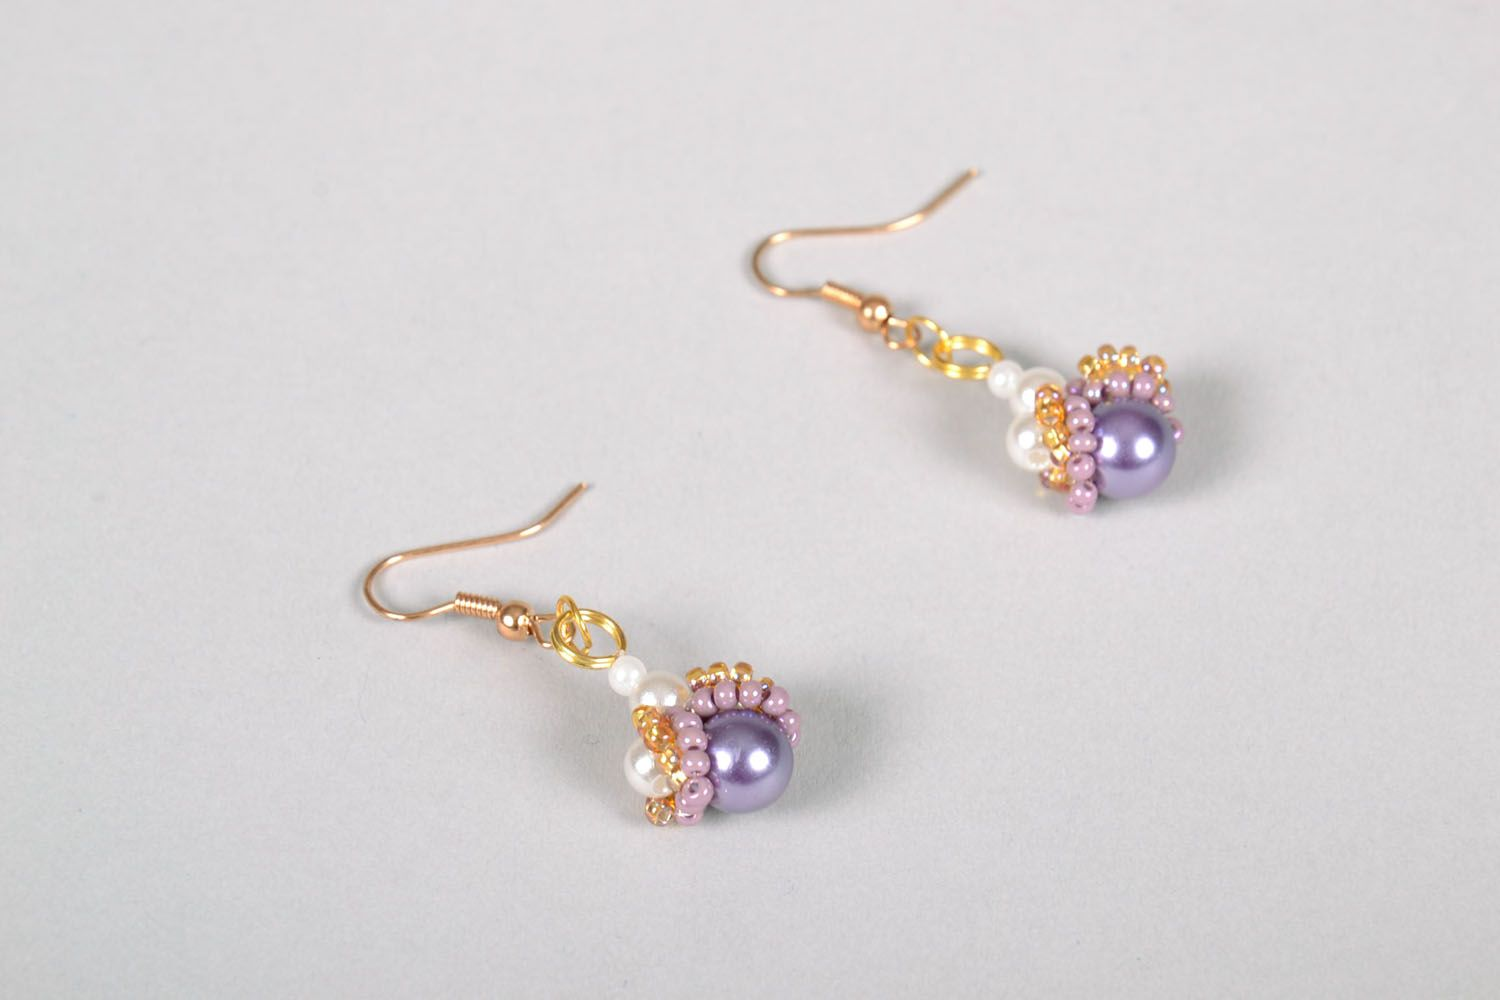 Beaded earrings with charms photo 3